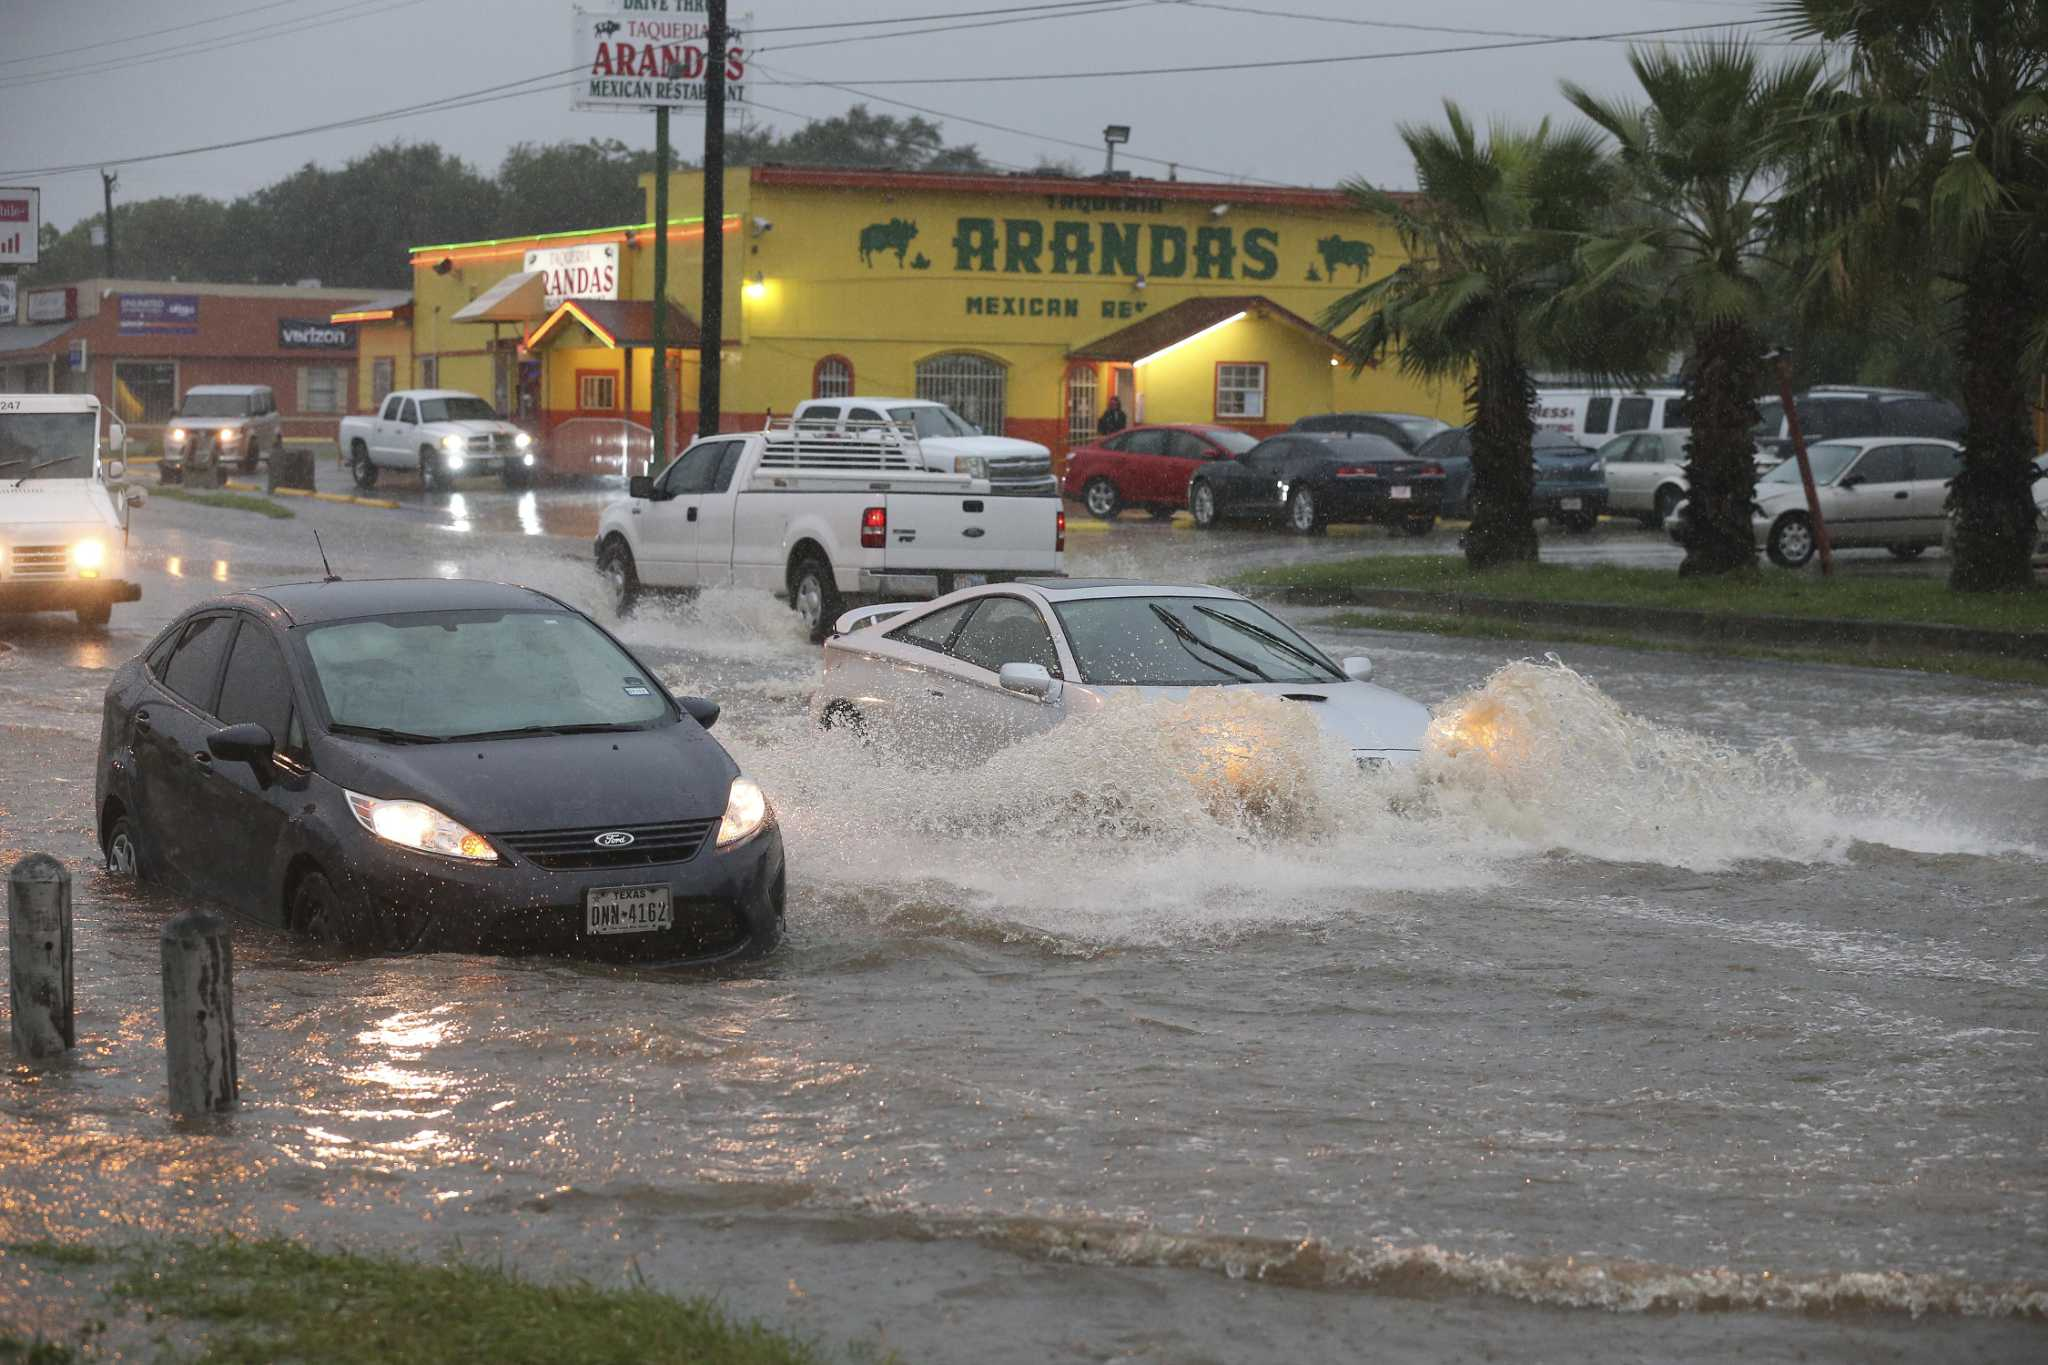 Heavy Rain Thunderstorms Flooding Streets During Morning